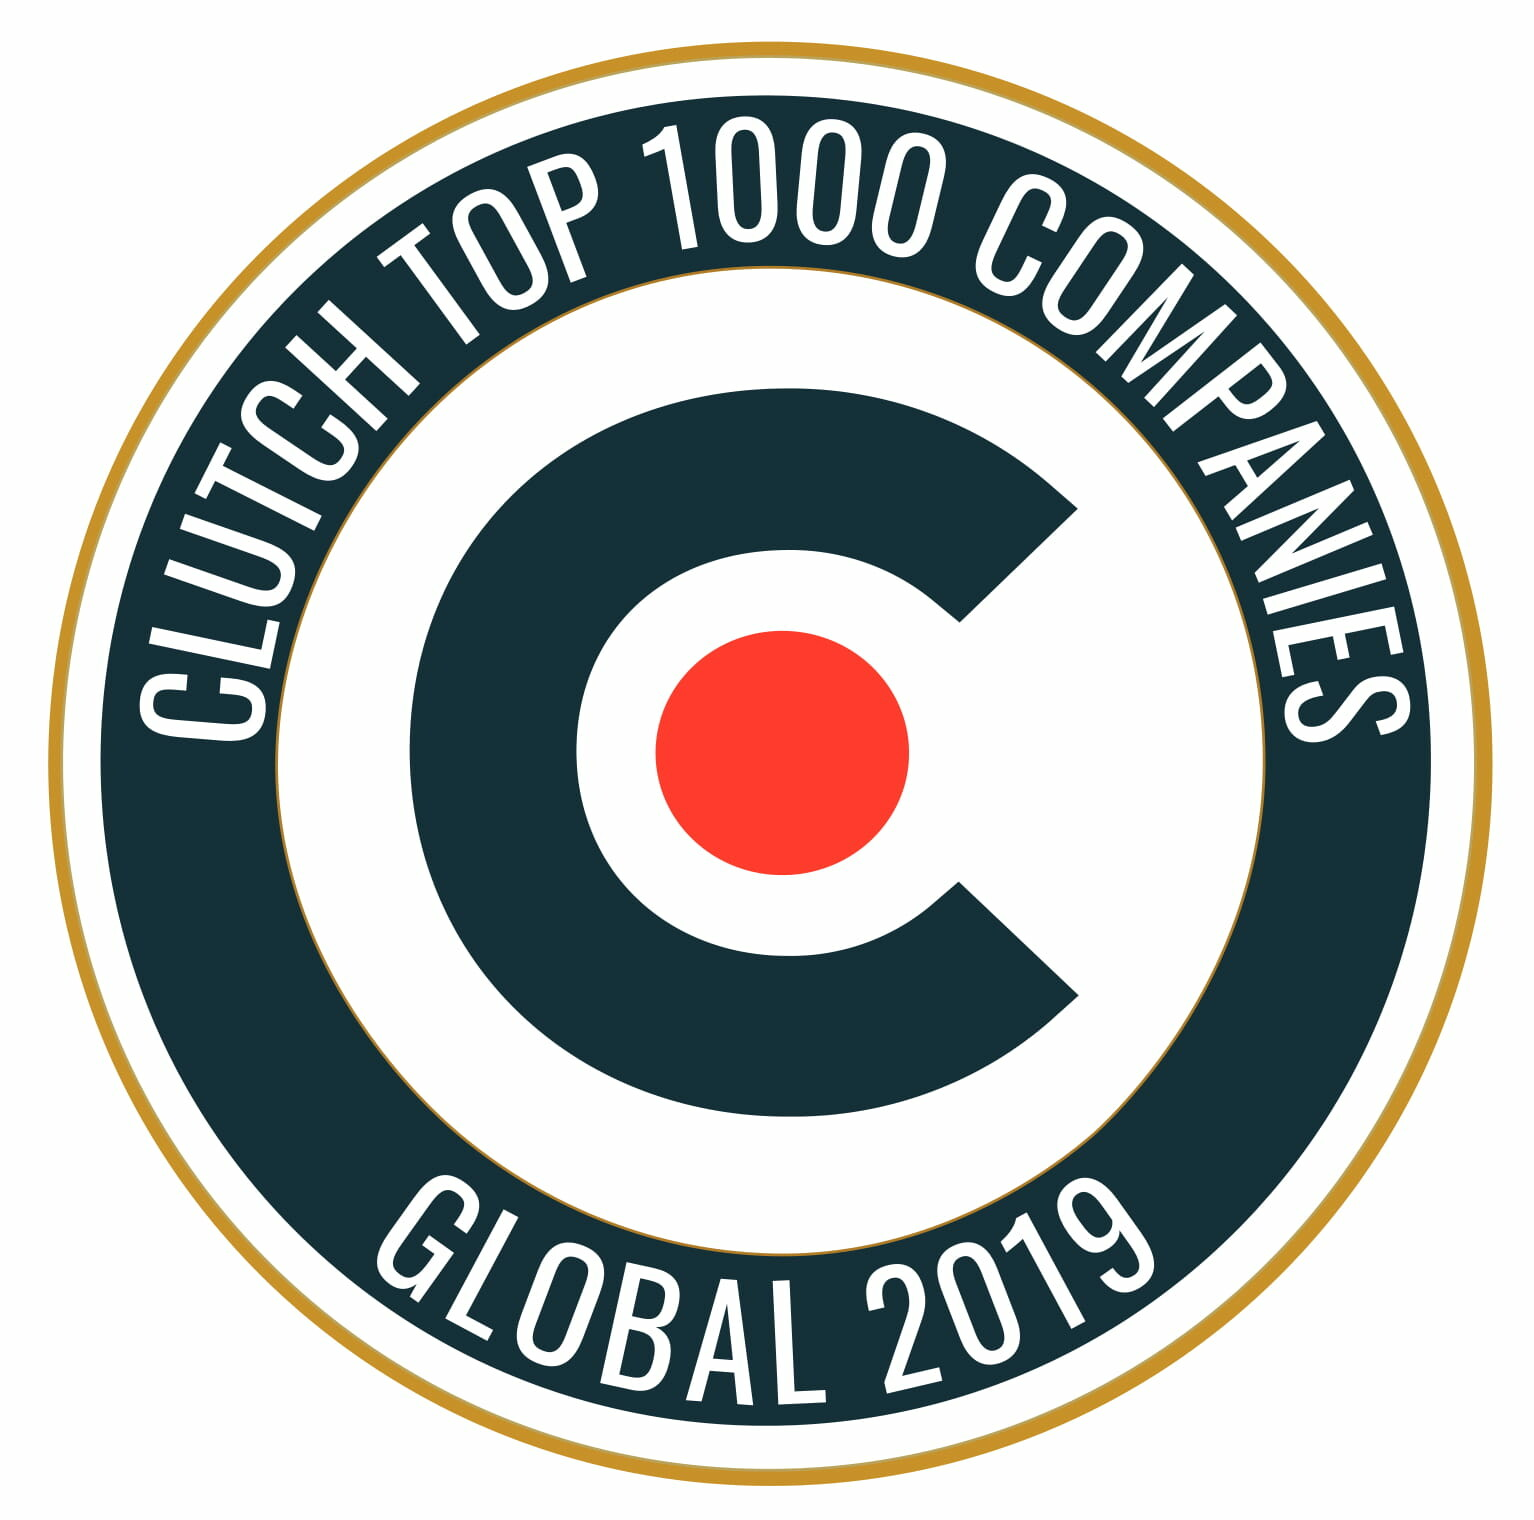 CodeWave  in 2019 Top 1000 Global companies ranking